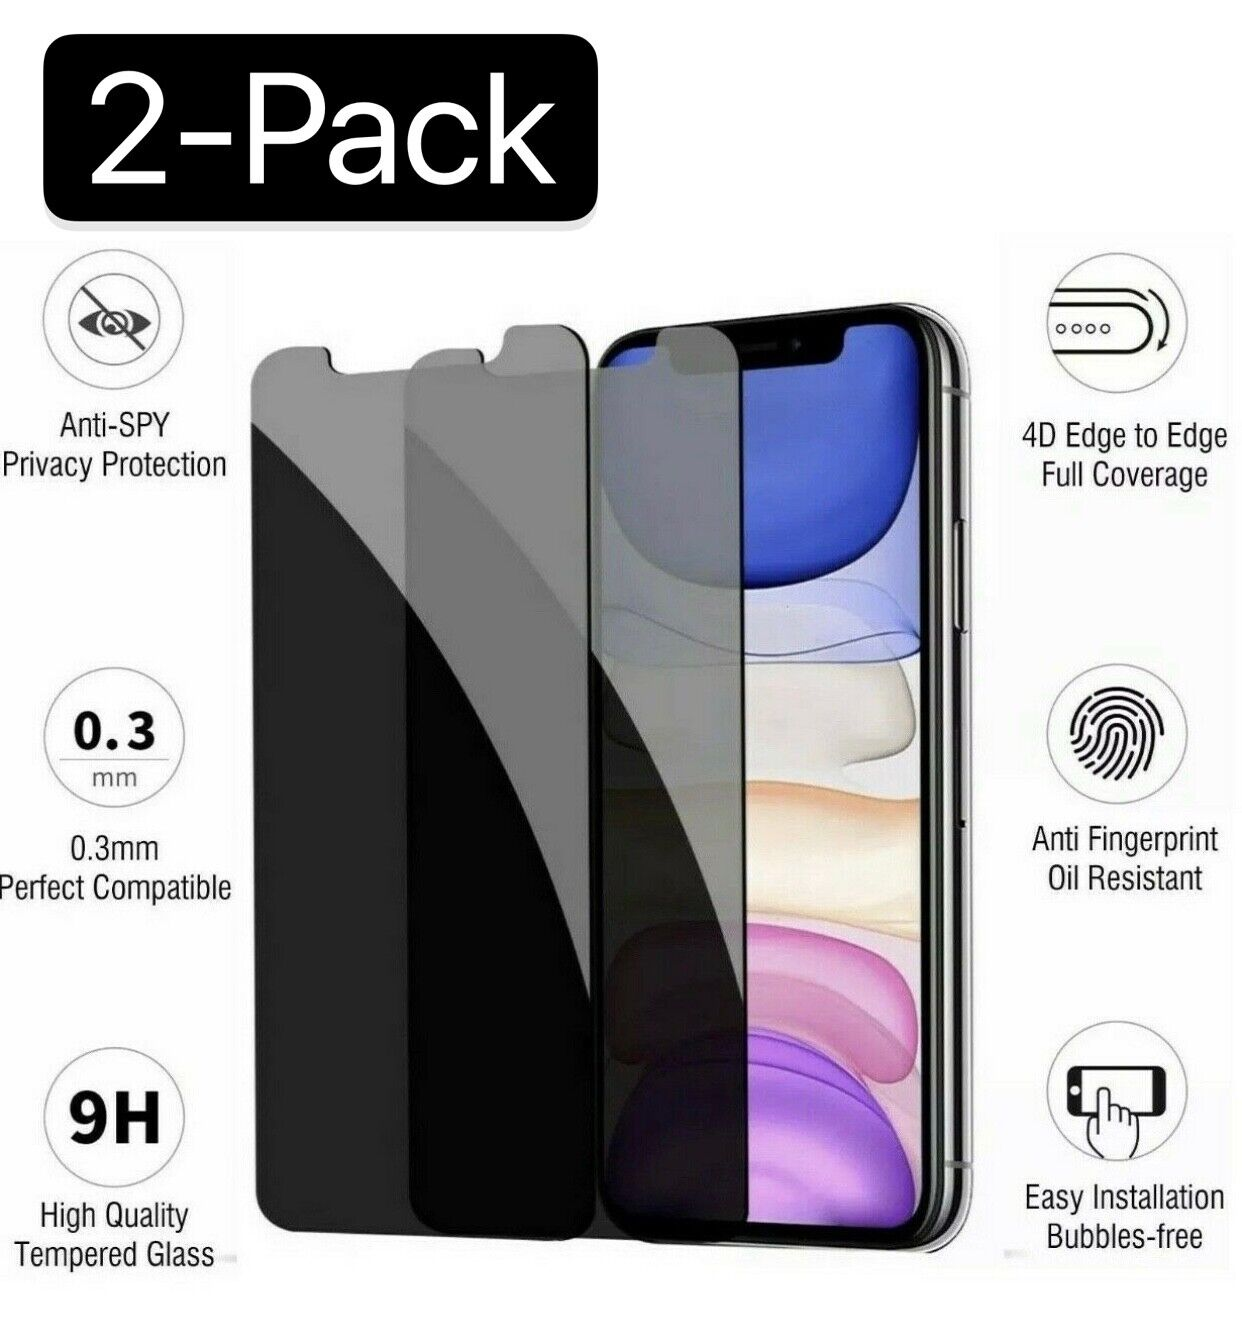 iPhone X XS XR XS Max 11 12 Pro Privacy Anti-Spy Tempered Glass Screen Protector